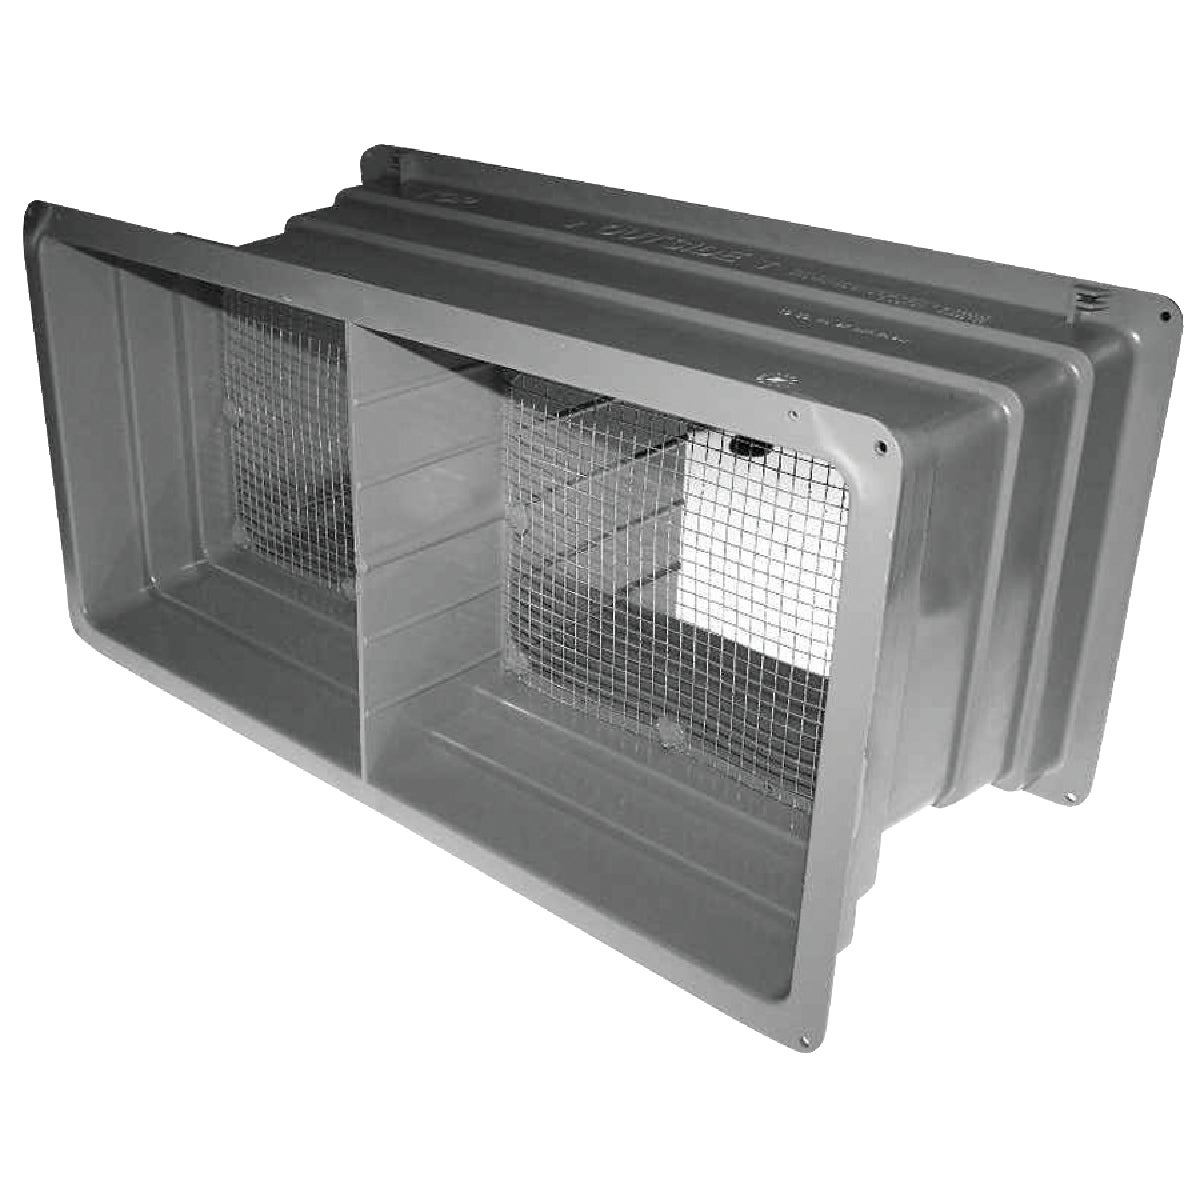 "8"" PLST FOUNDATION VENT - 559027 by Noll/norwesco Llc"